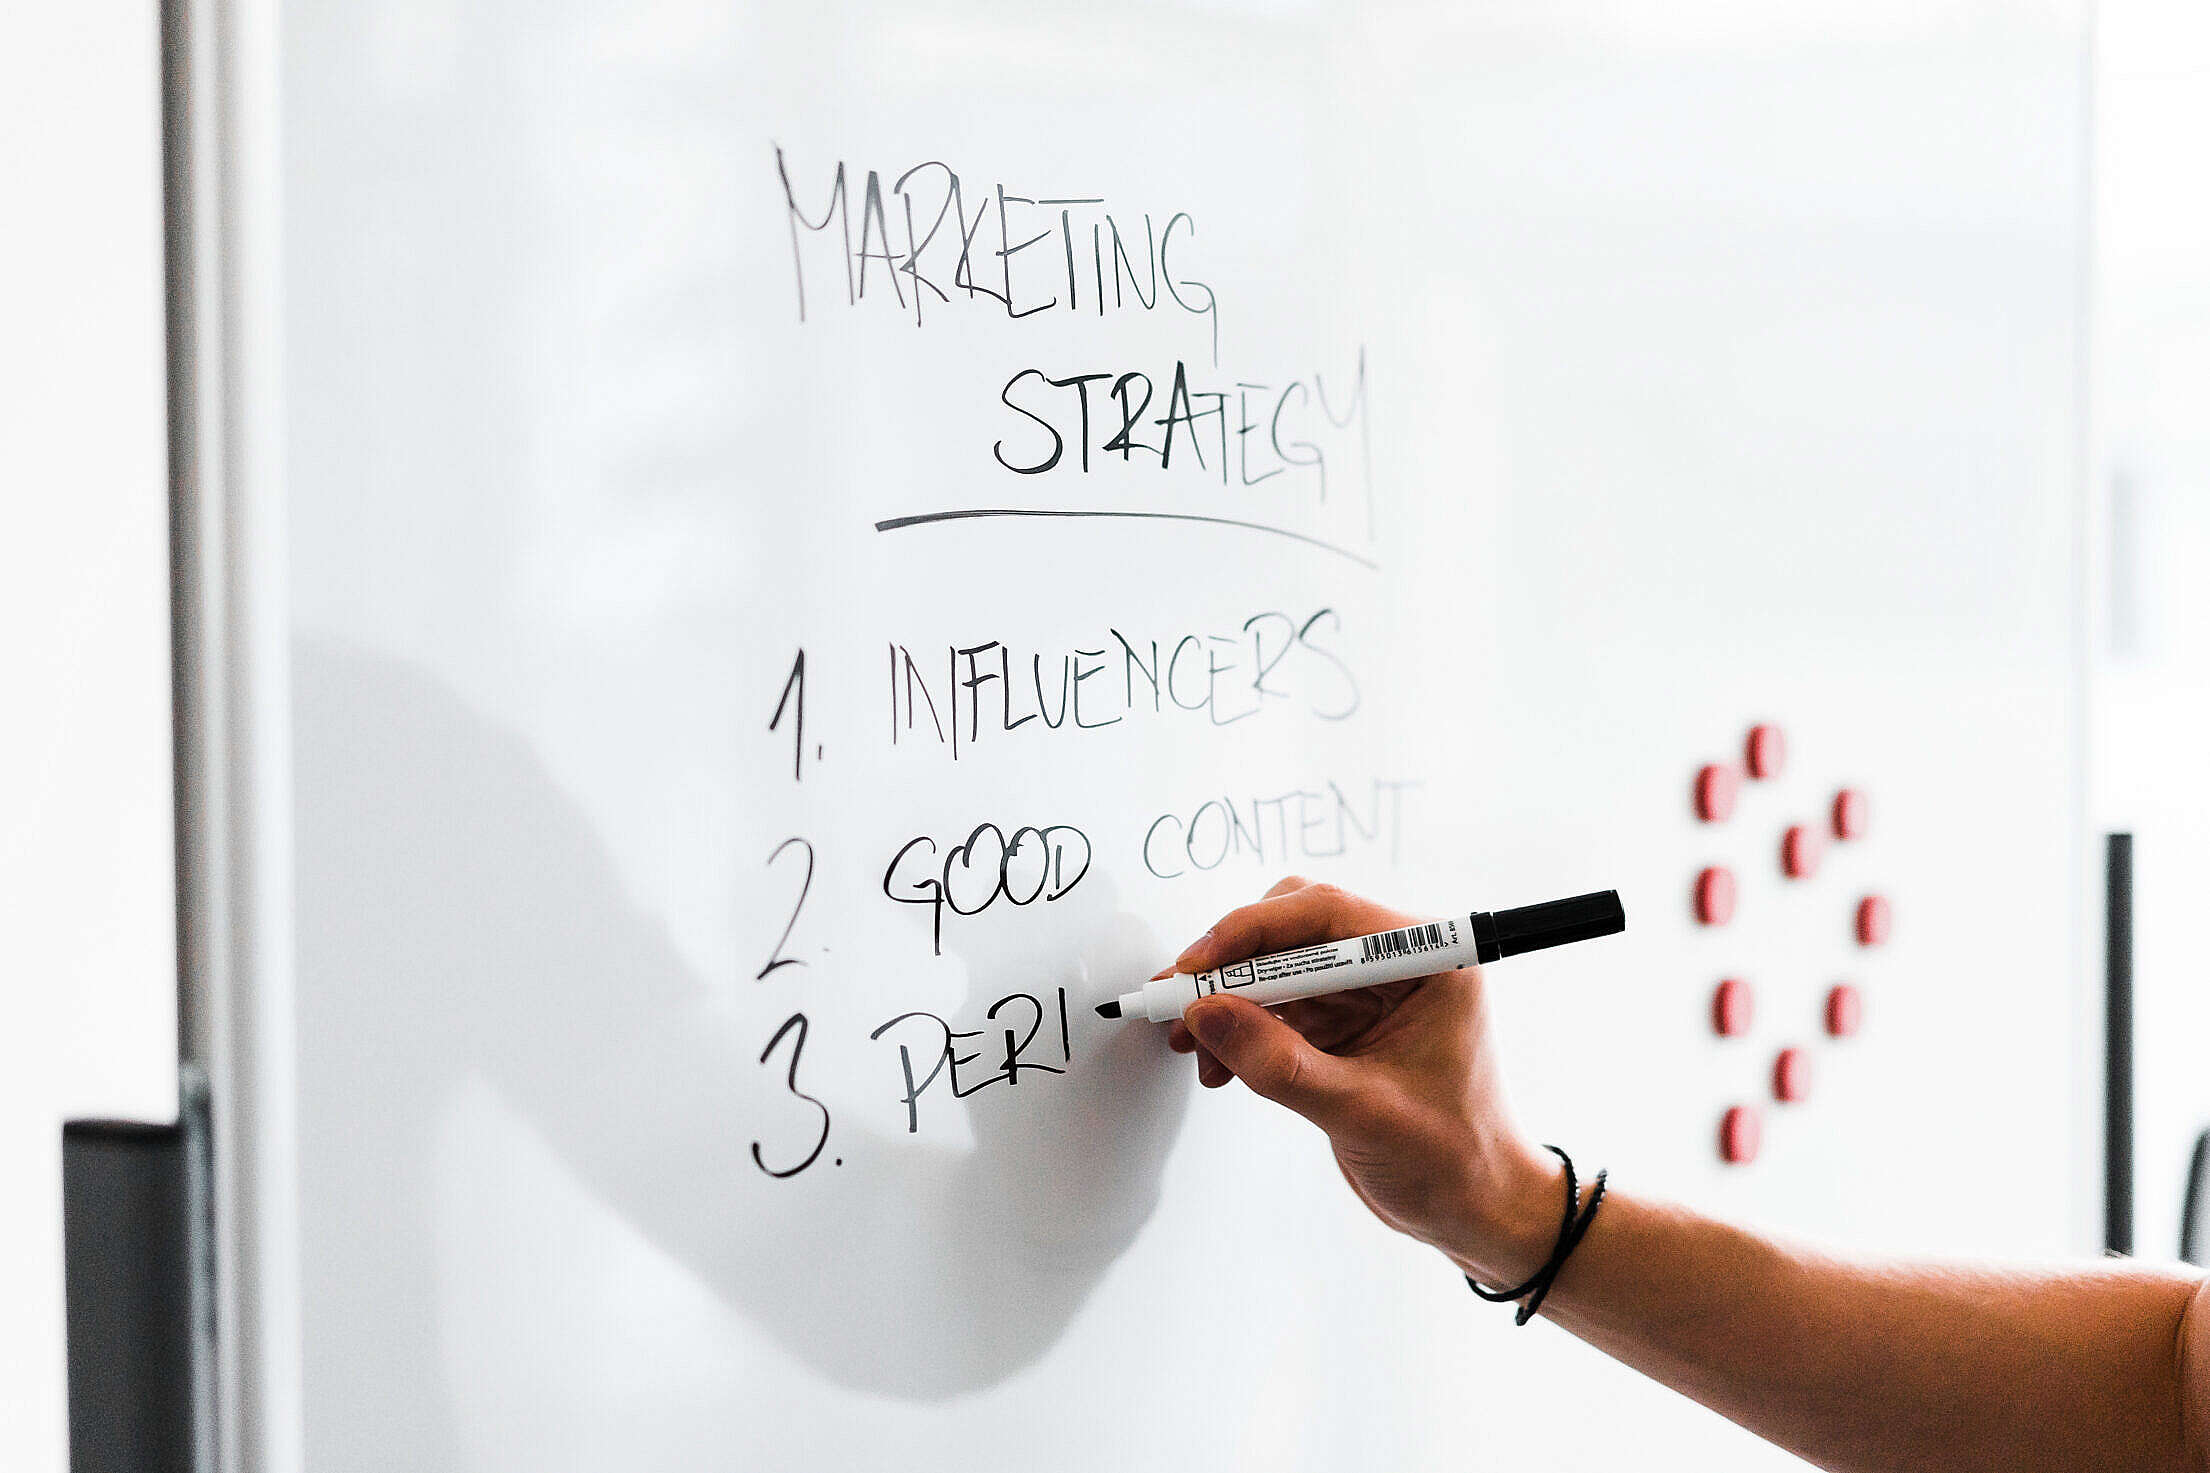 Team Leader Writing on White Board Free Stock Photo